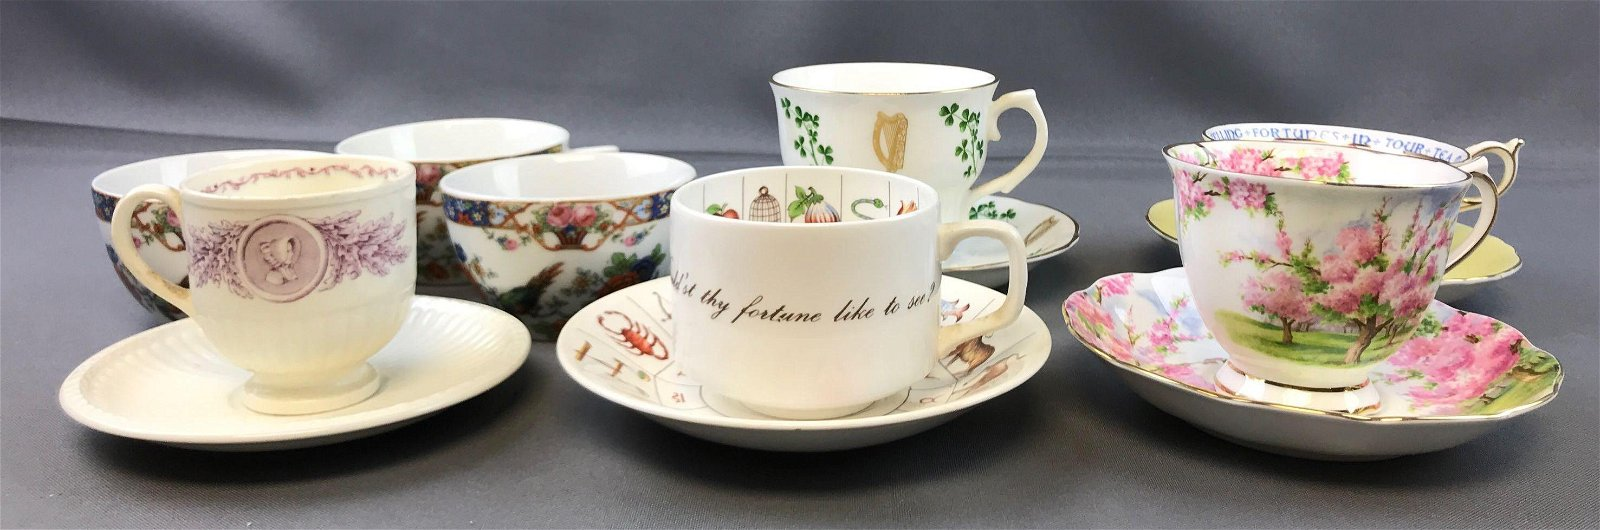 Group of Vintage Tea Cups and Saucers - Fortune Telling